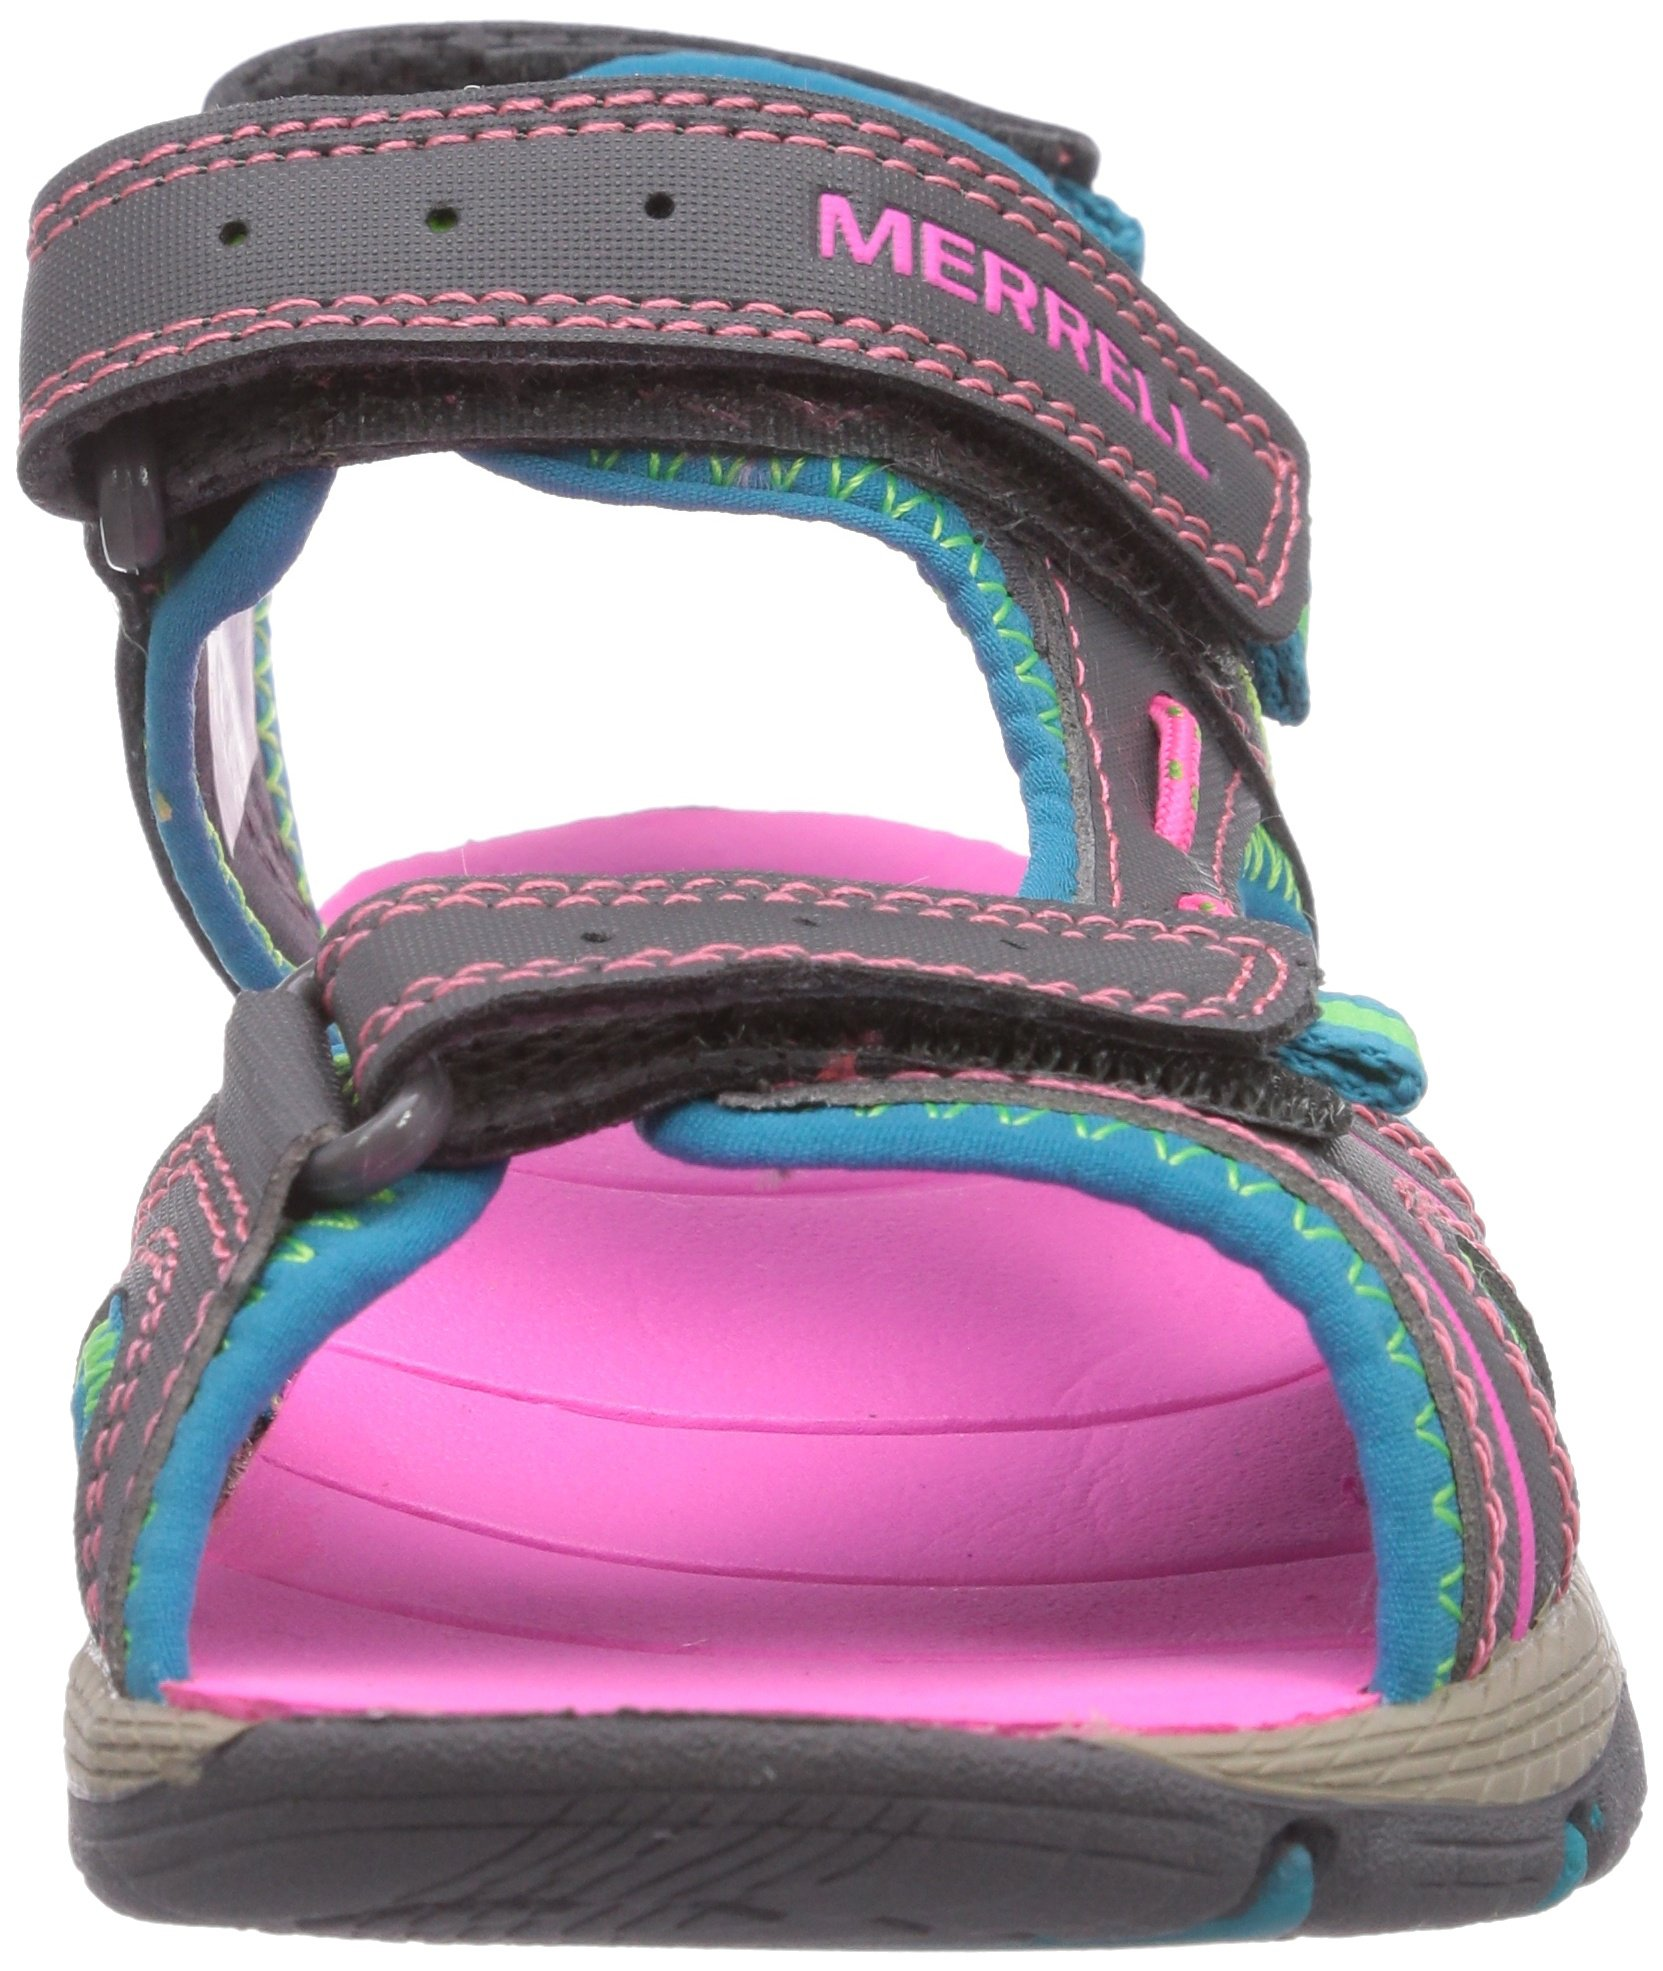 Merrell Panther Athletic Water Sandal , Blue/Pink/Green, 11 M US Little Kid by Merrell (Image #4)